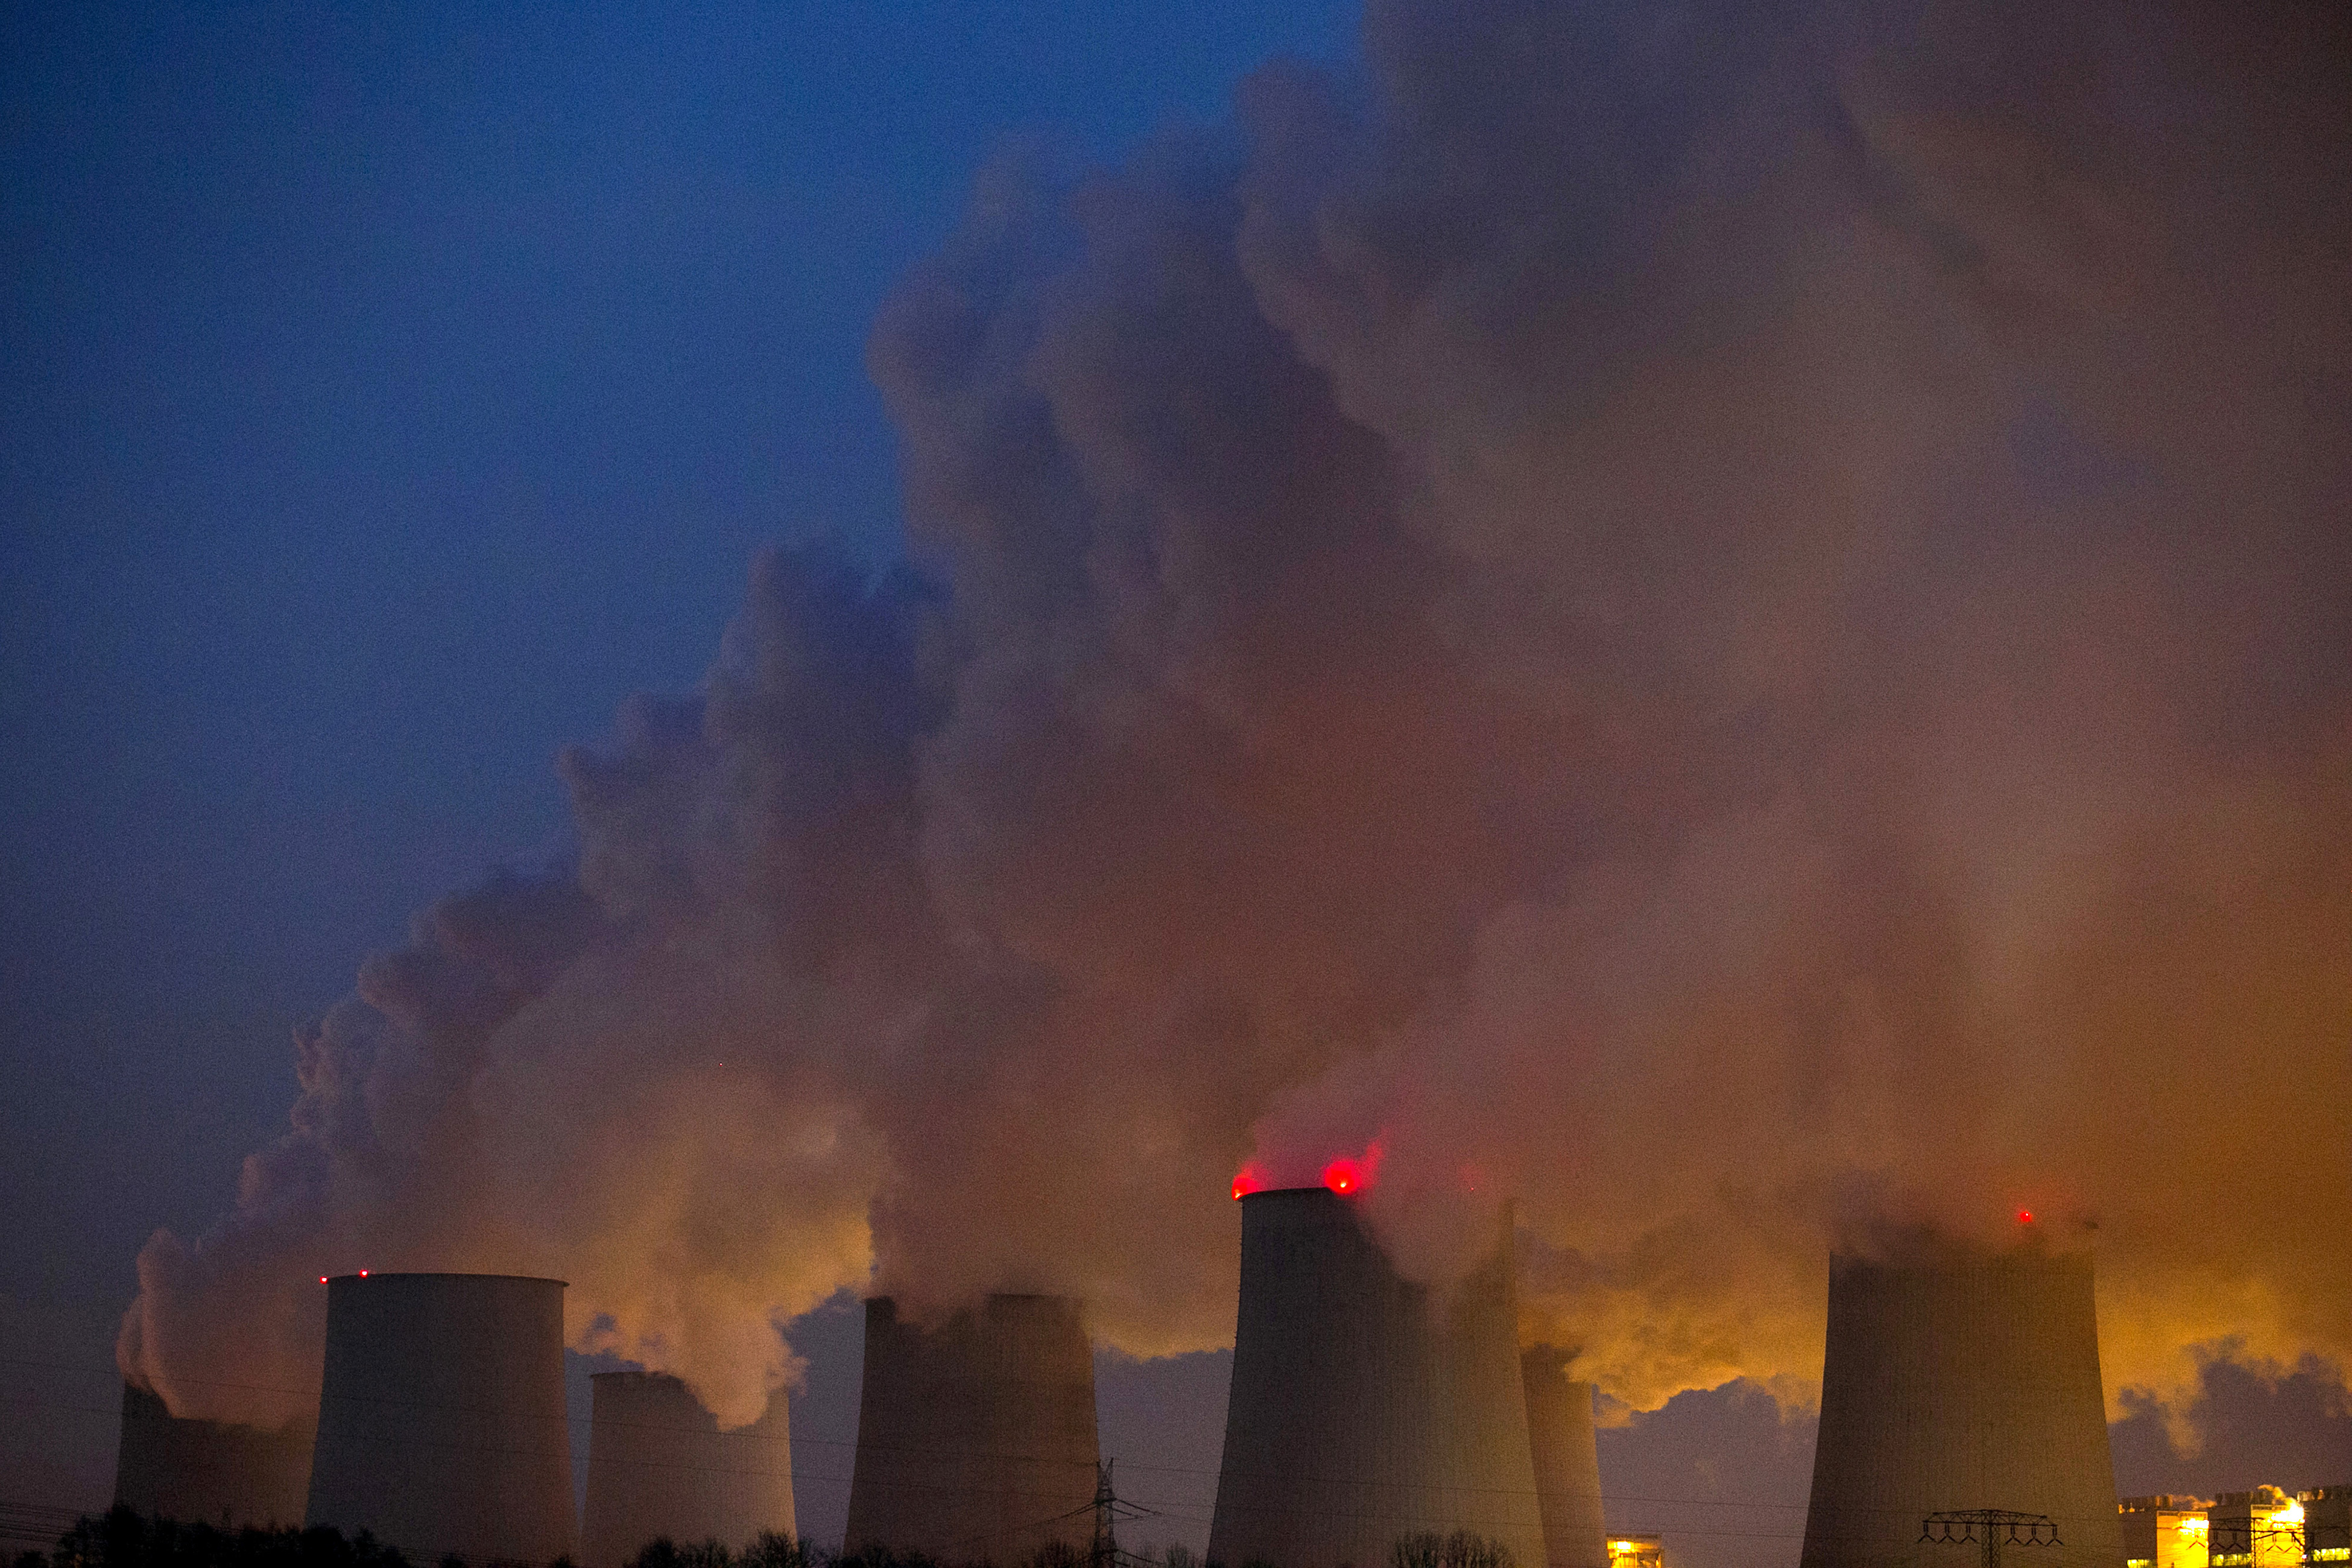 Vapor escapes from cooling towers at the lignite coal-fired power plant operated by Vattenfall AB, in Janschwalde, Germany, on Thursday, Dec. 4, 2014.